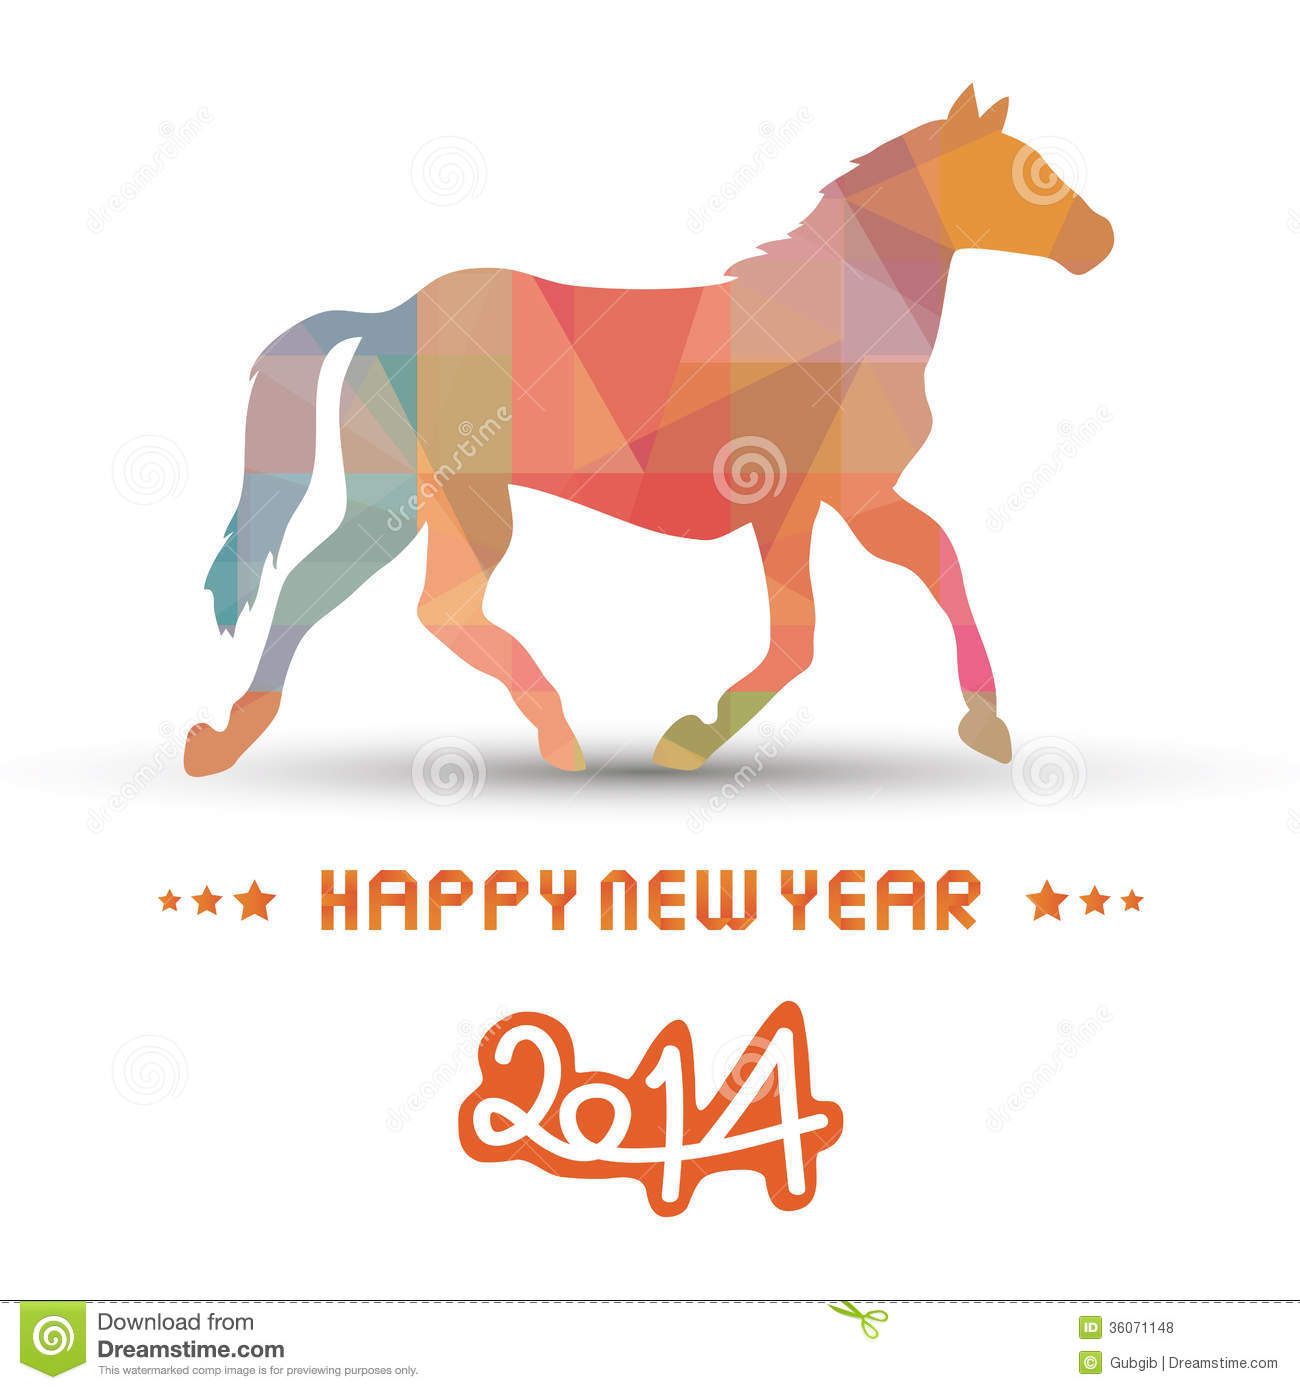 Happy new year 2014 card20 stock vector. Image of season ...